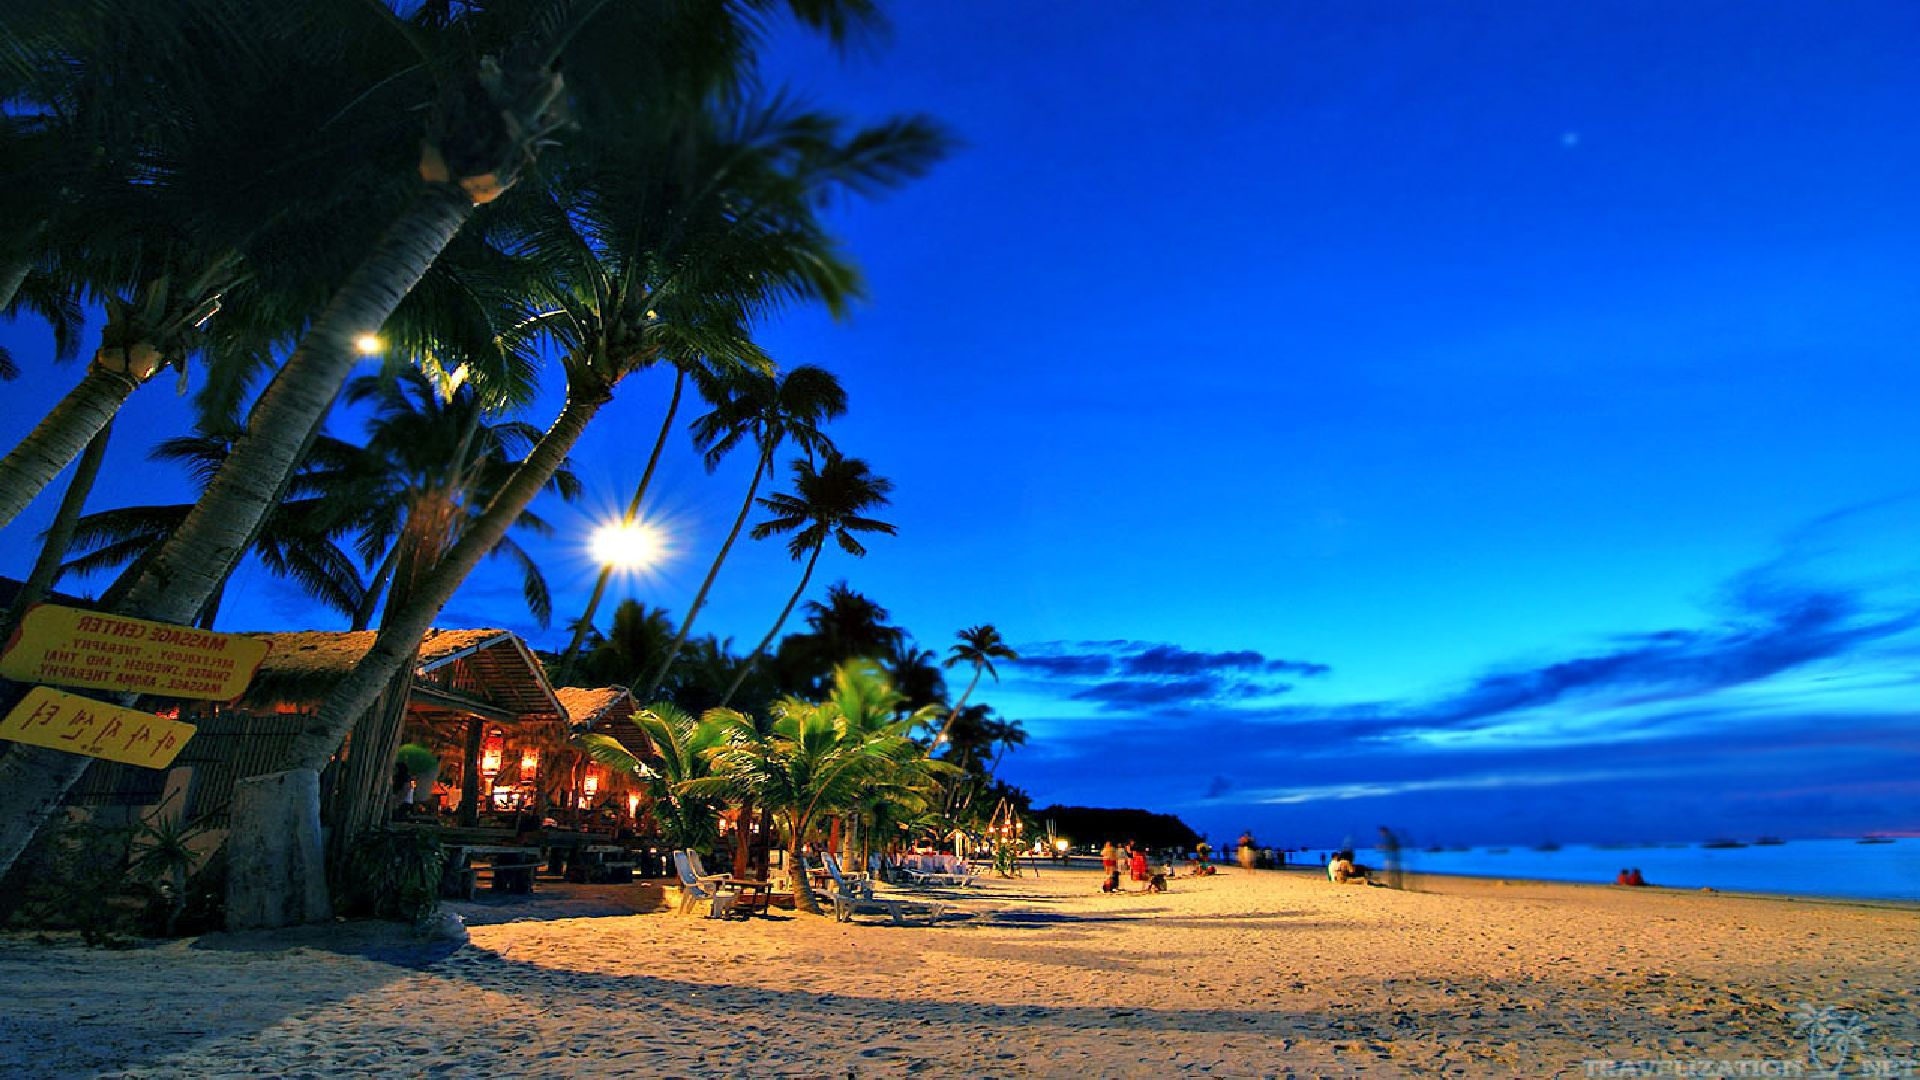 Beach At Night Wallpaper Beach At Night Wallpapers for PC 1920x1080